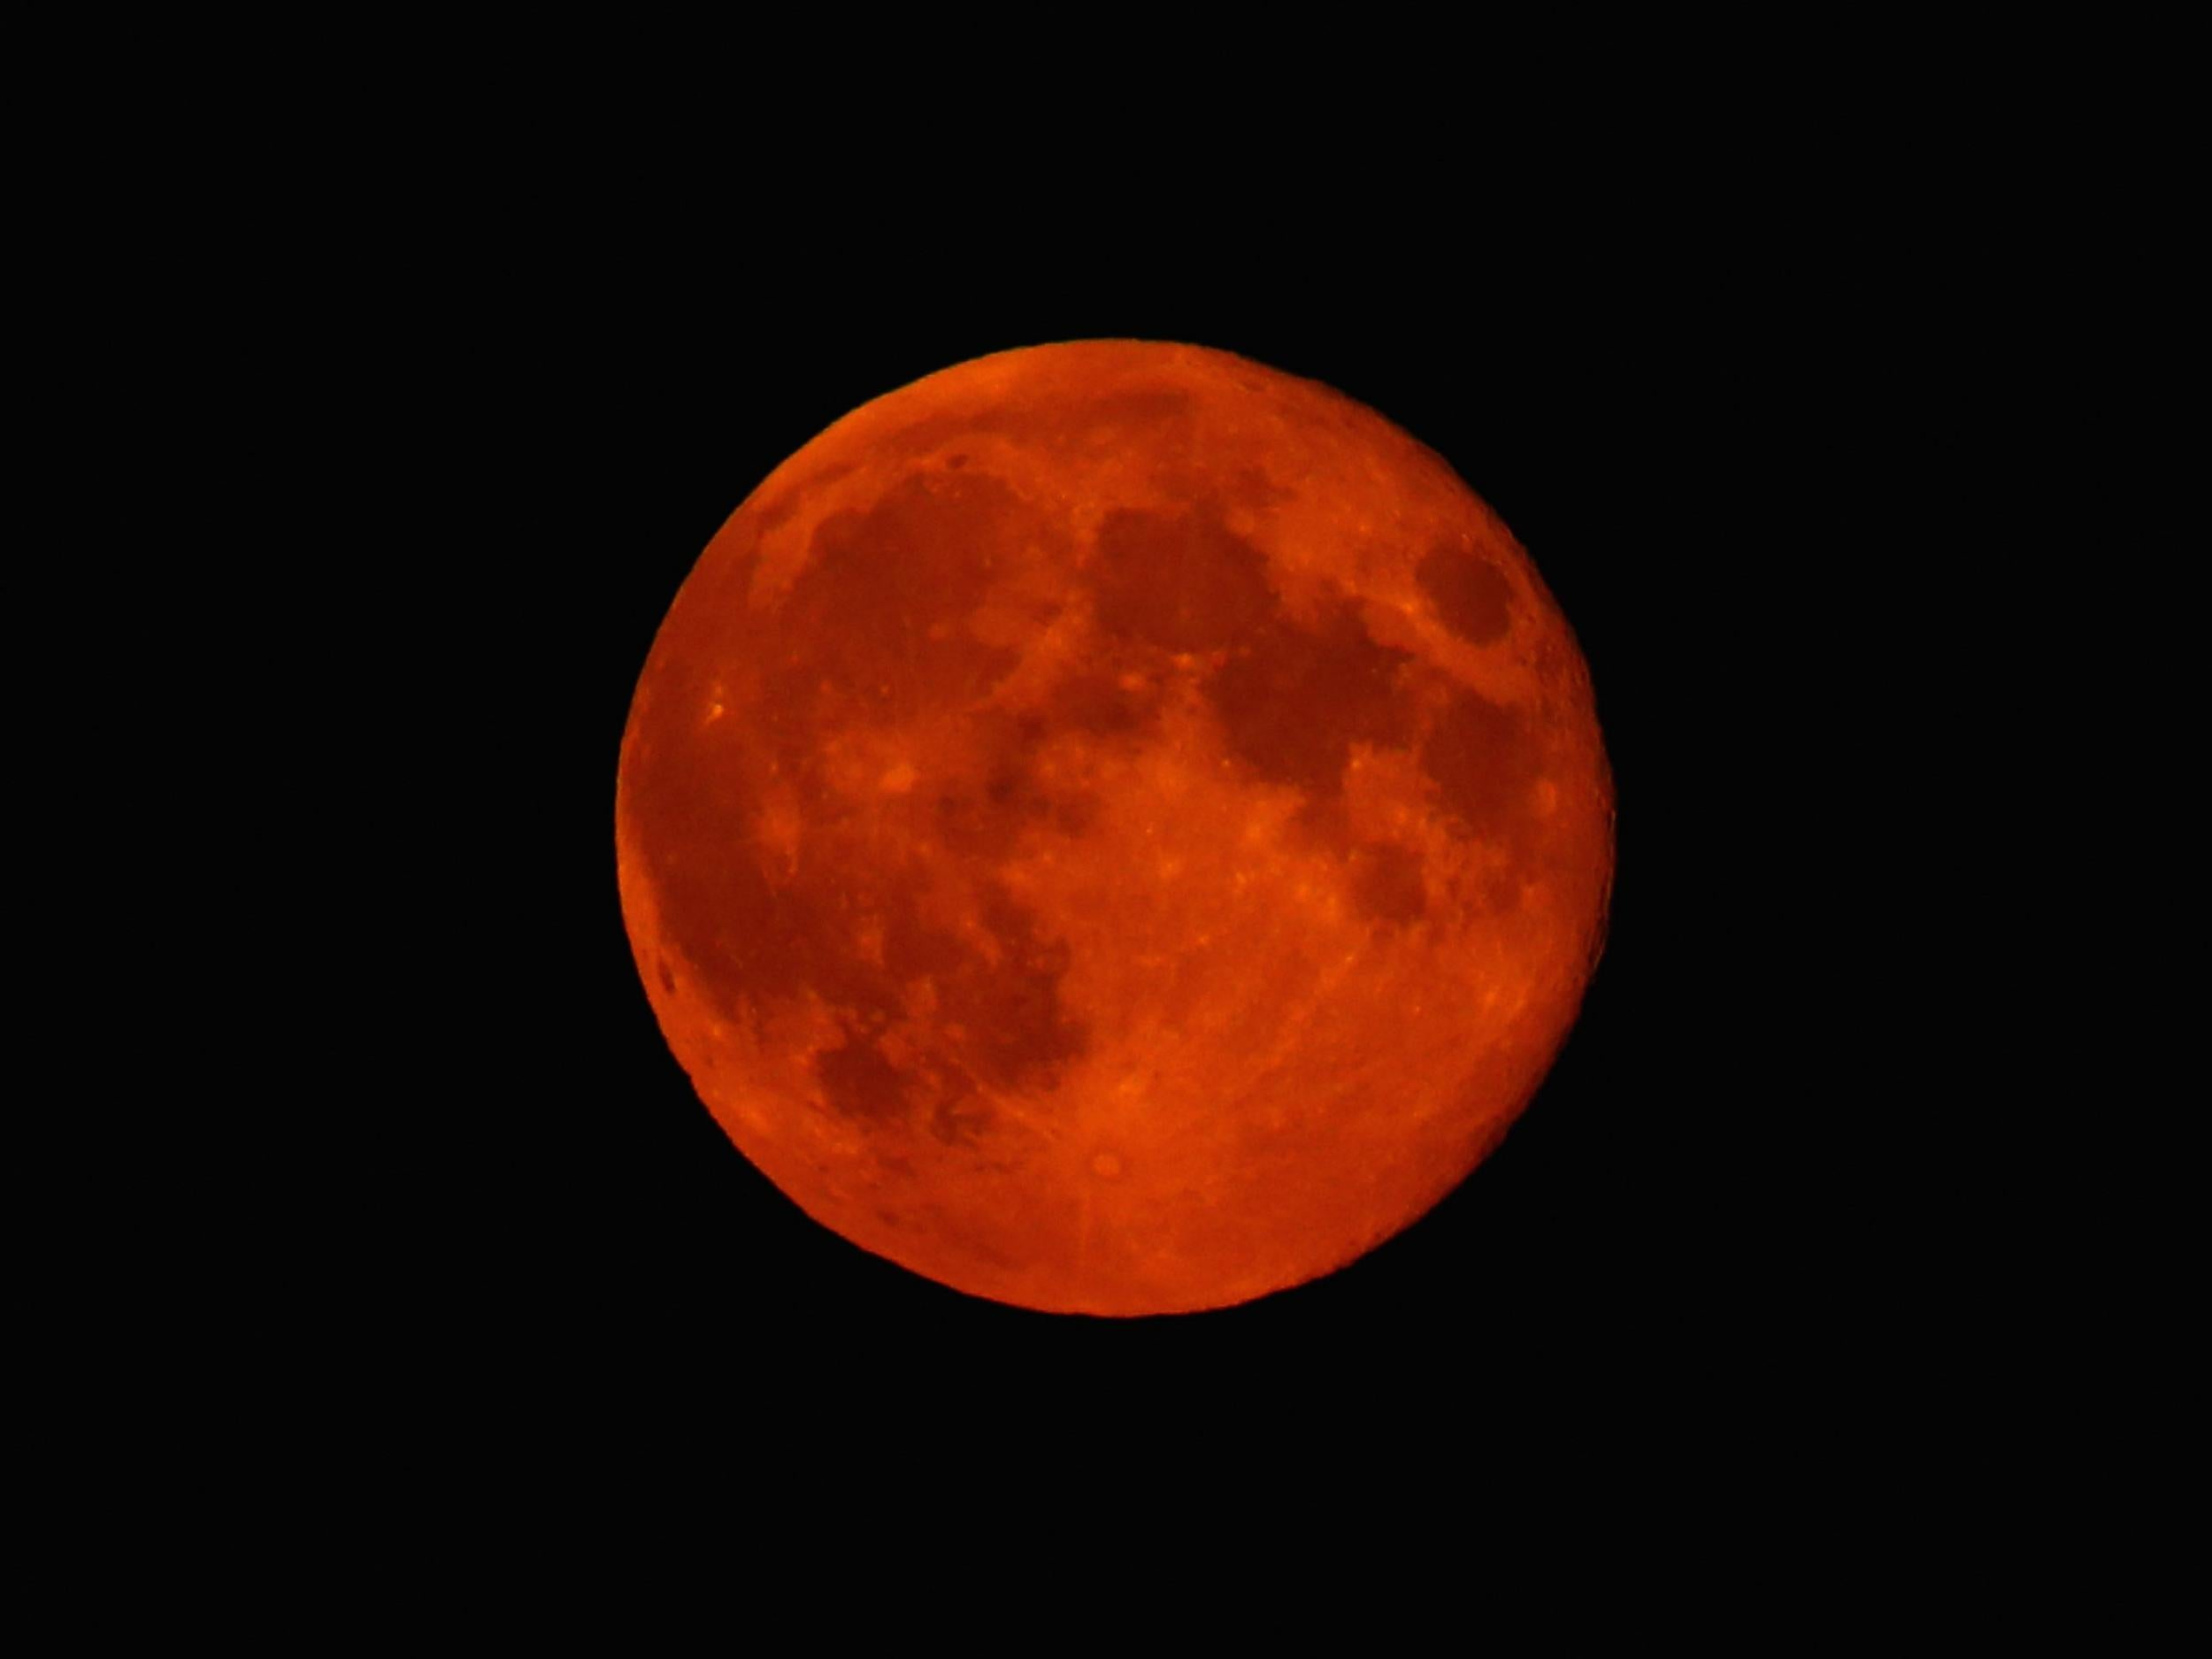 Stargazing January Copper Coloured Supermoon Looms During Total